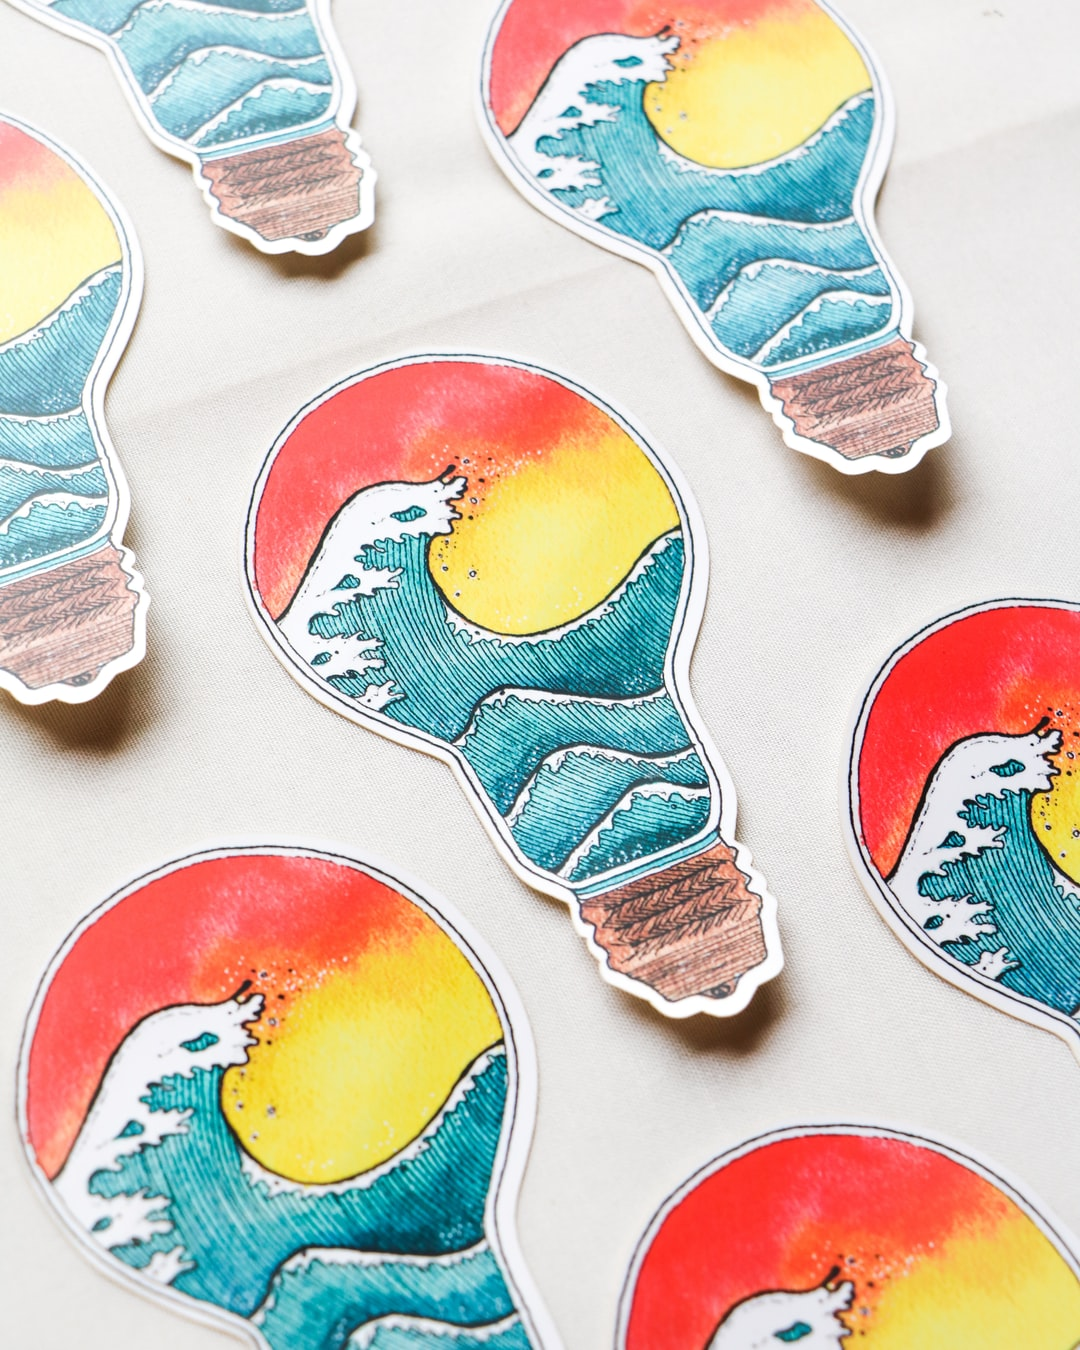 Watercolour Art Vinyl Stickers by Stationery Hoe